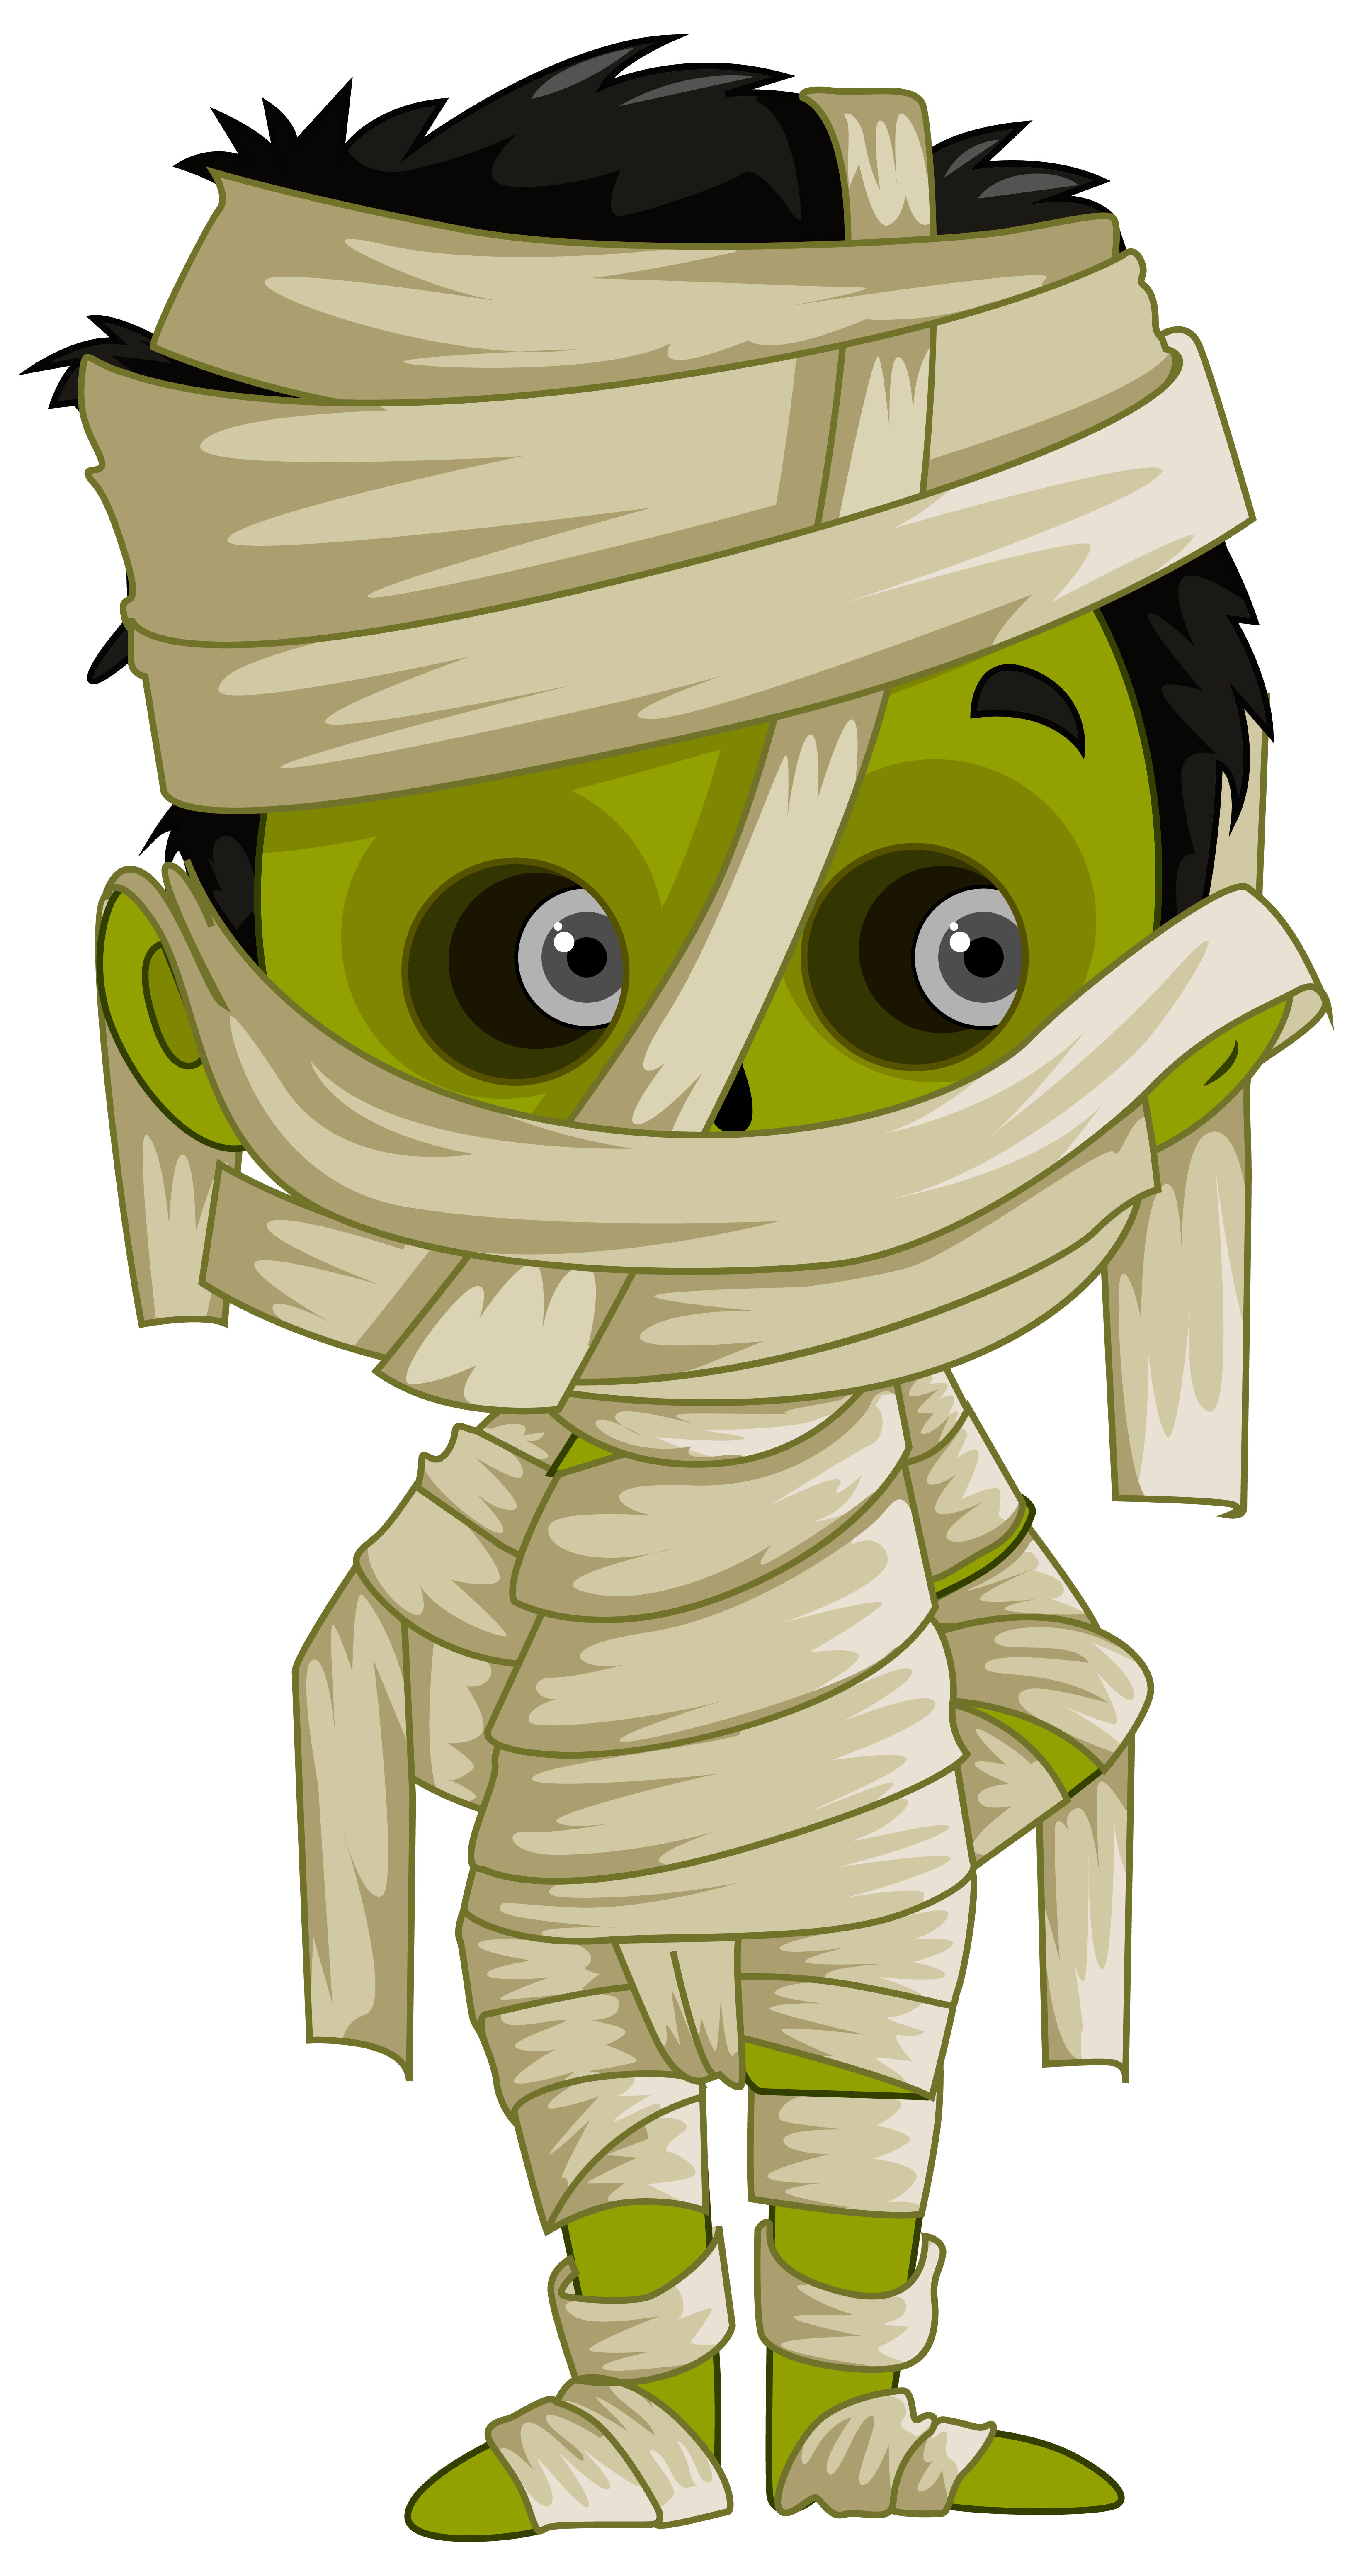 Mummy halloween clipart image royalty free download 28+ Collection of Mummy Clipart Png | High quality, free cliparts ... image royalty free download